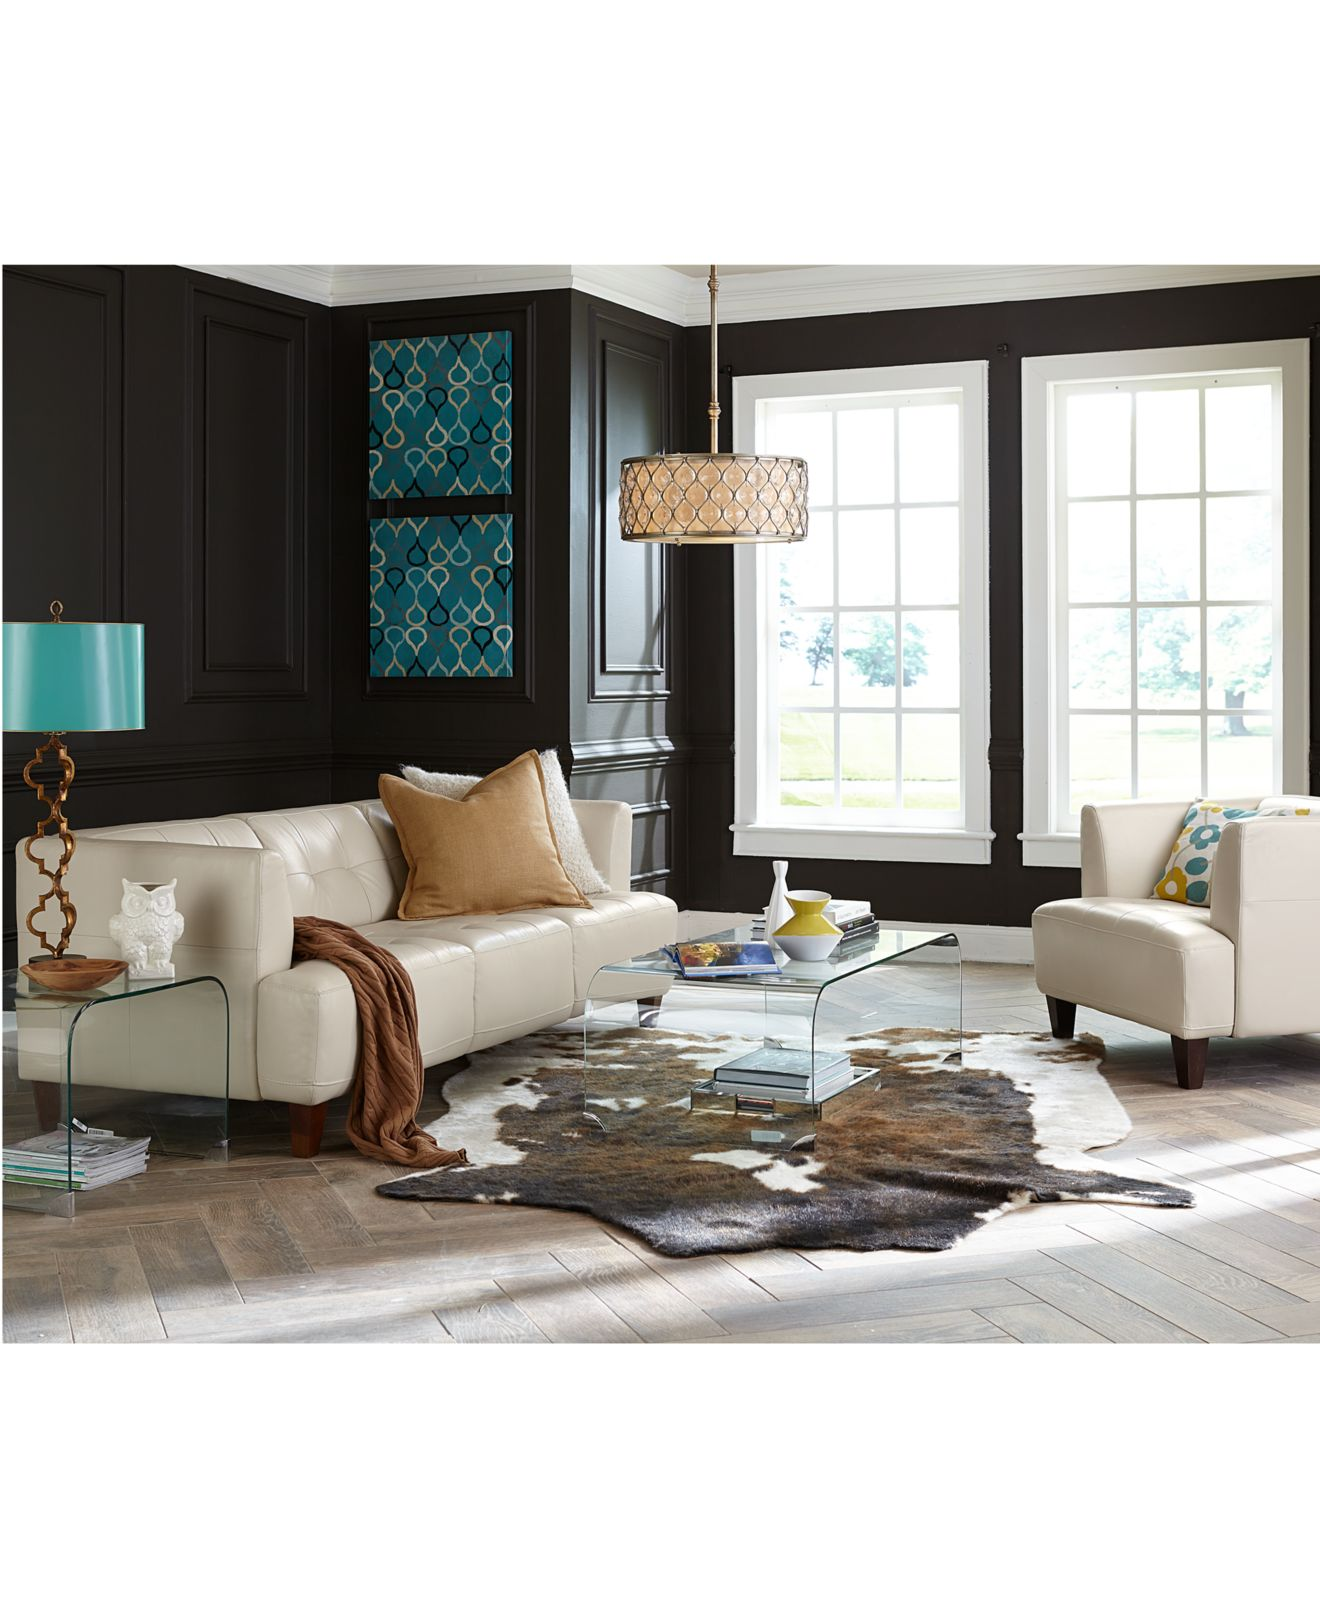 living room furniture sets macy s alessia leather sofa living room furniture collection